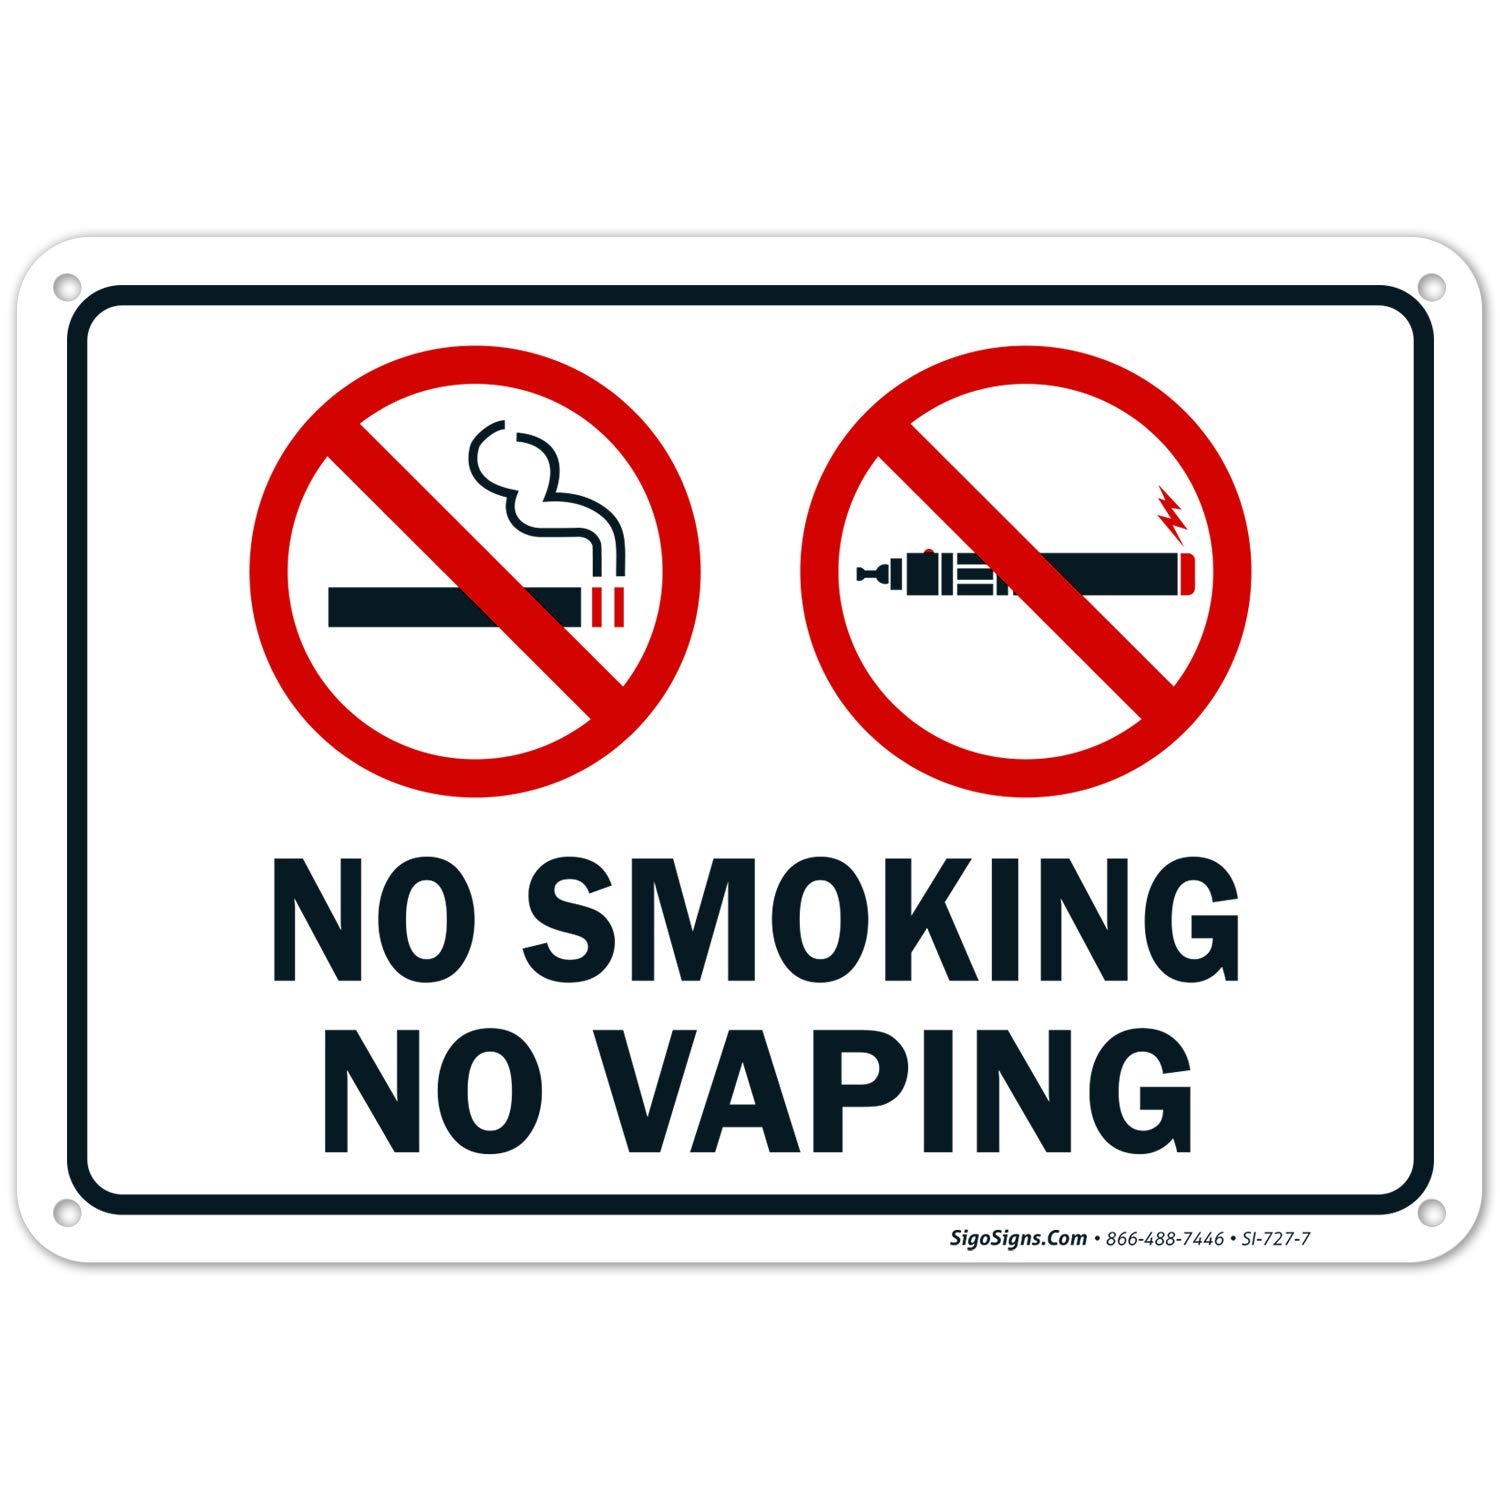 No Smoking No Vaping Sign, 10x7 Rust Free Aluminum, Weather/Fade Resistant, Easy Mounting, Indoor/Outdoor Use, Made in USA by SIGO SIGNS